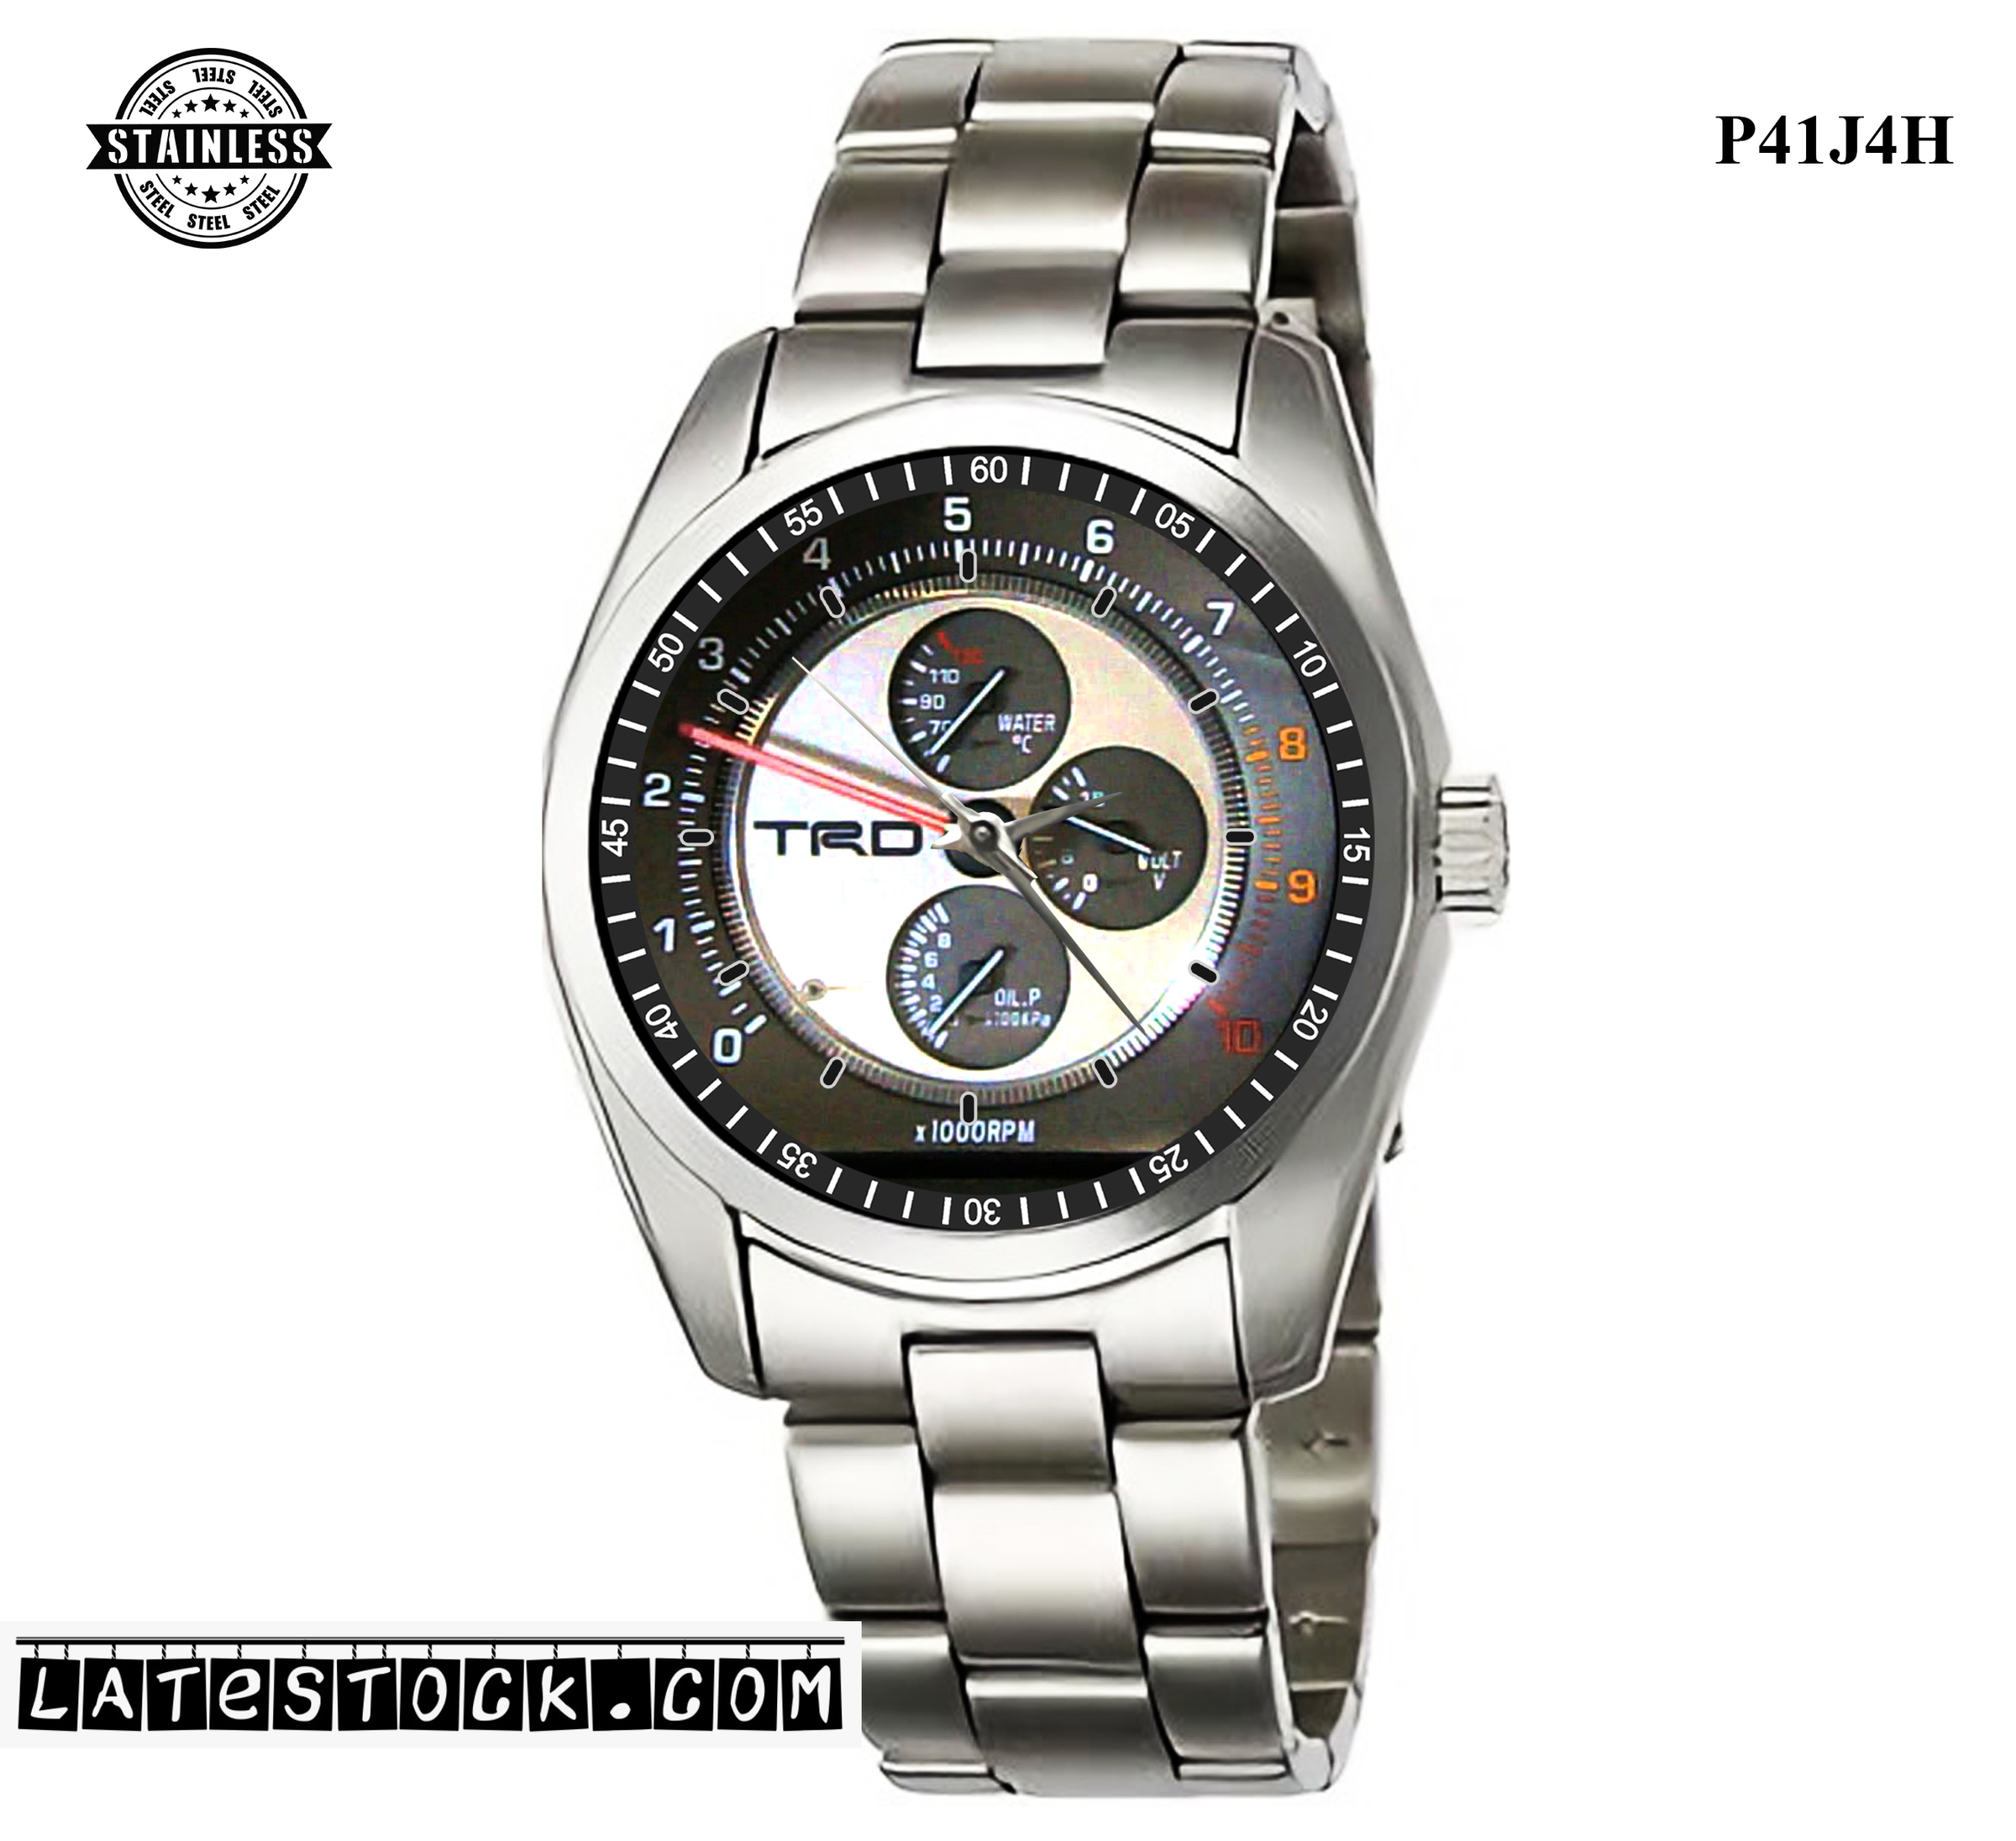 LIMITED EDITION!! ALTEZZA RS200 TRD RACING Speedometer Sport Metal Watch b.jpg